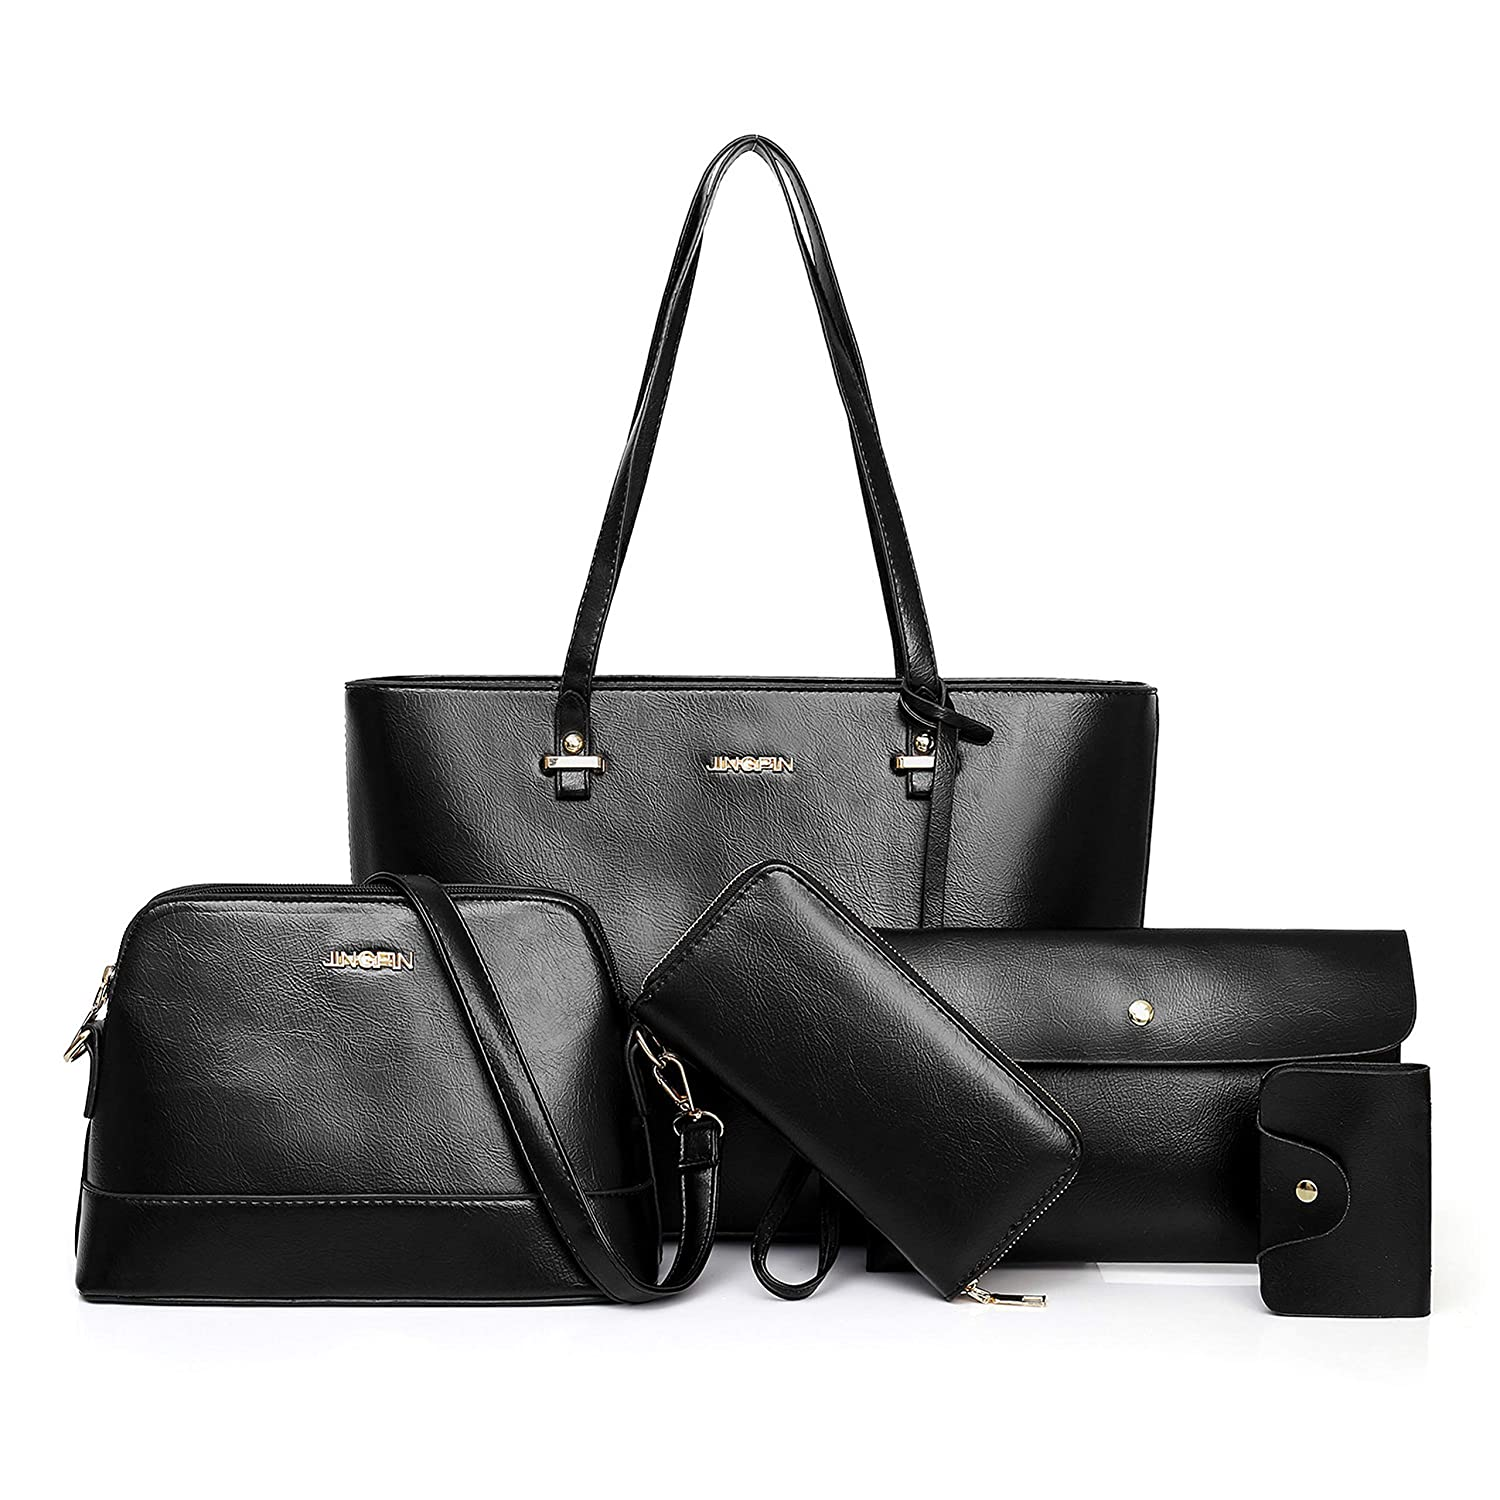 Women Handbag and Purse Shoulder Bag Tote Bag for Work 5 Piece Set Bag  (5pcs-black)  Handbags  Amazon.com d586ff9767